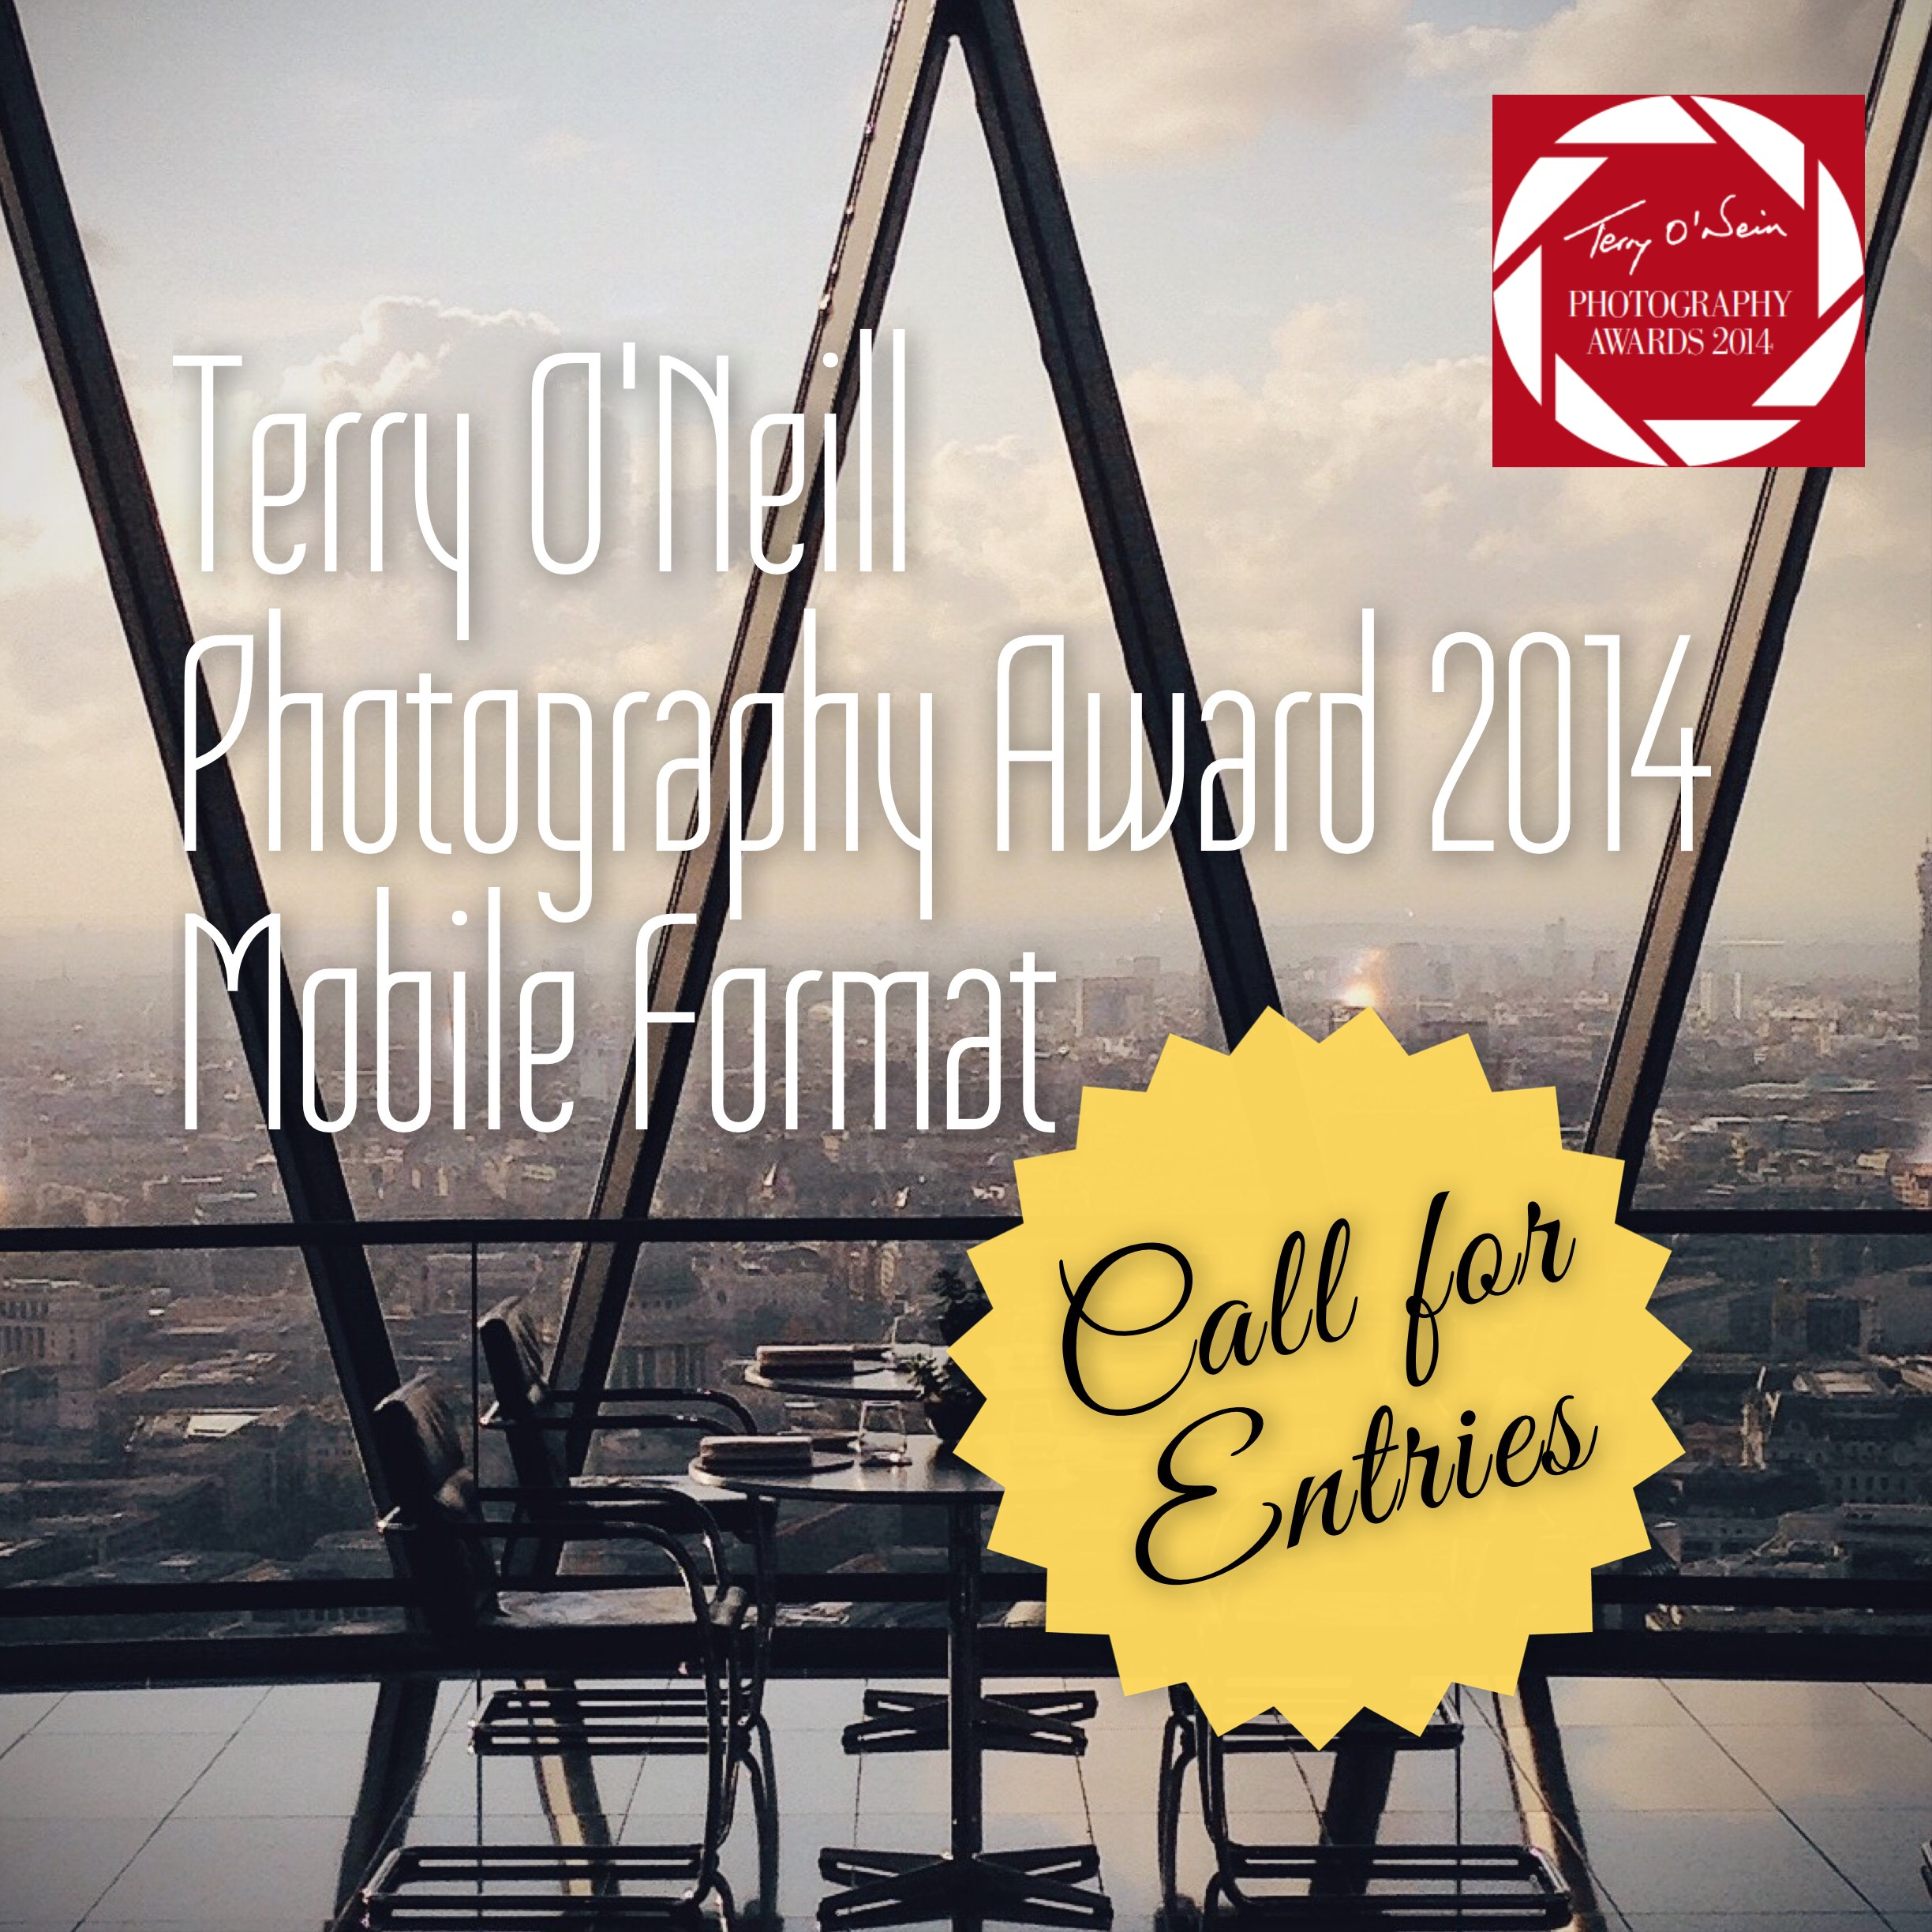 Terry O'Neill Photography Award 2014 Mobile Format